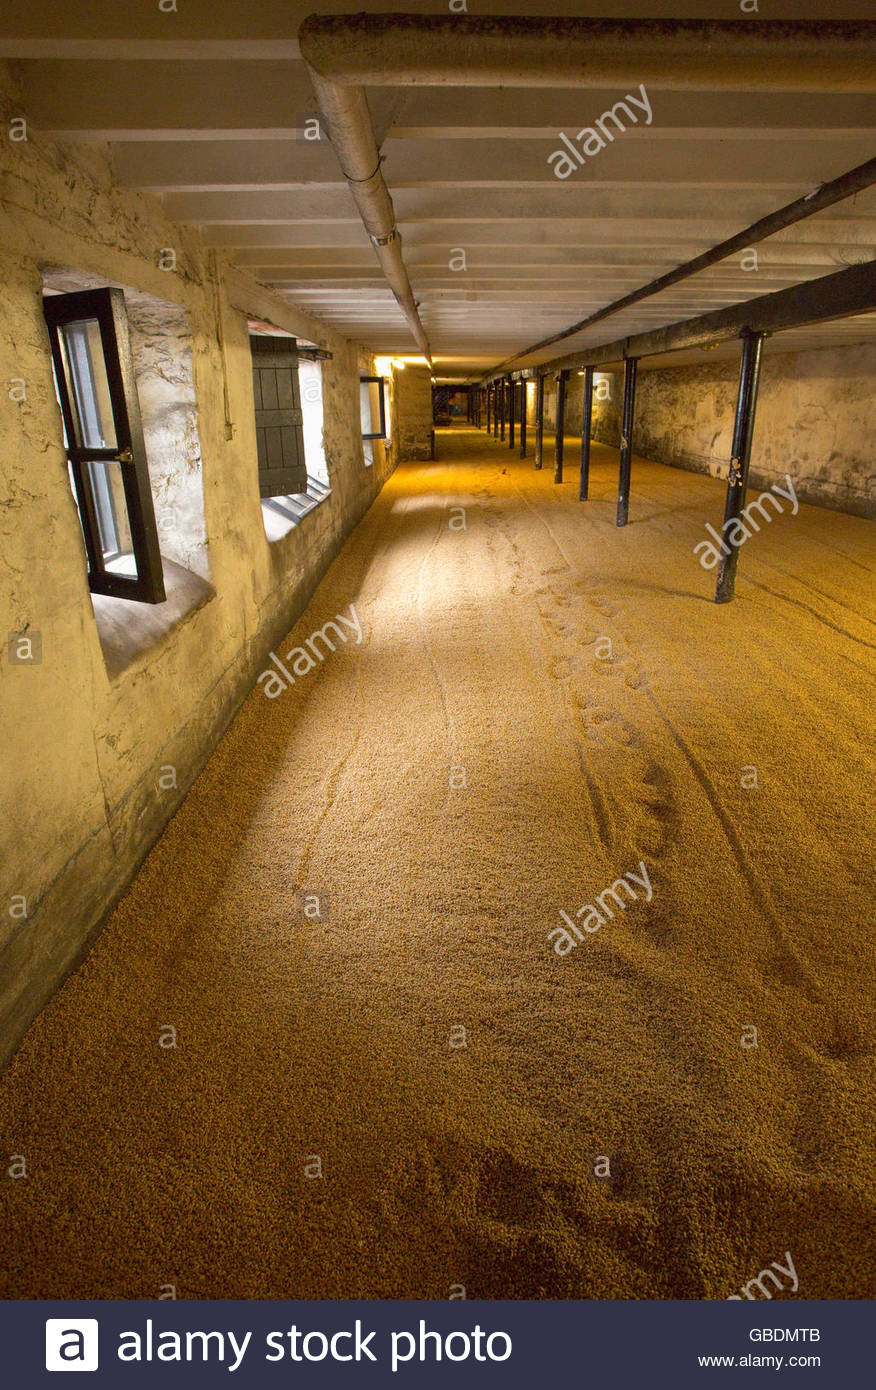 The Malting Room at the Highland Park Distillery, Kirkwall, Mainland, Orkney, Scotland. Stock Photo